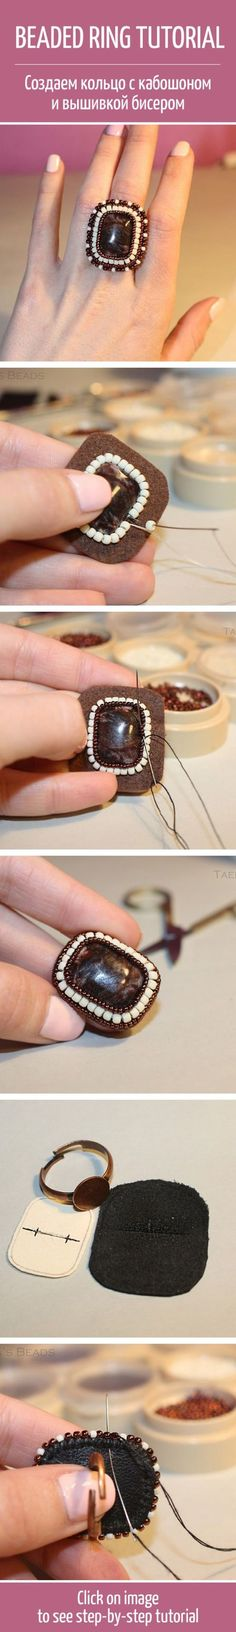 Decorative rings make tutorials ,,, gorgeous ~